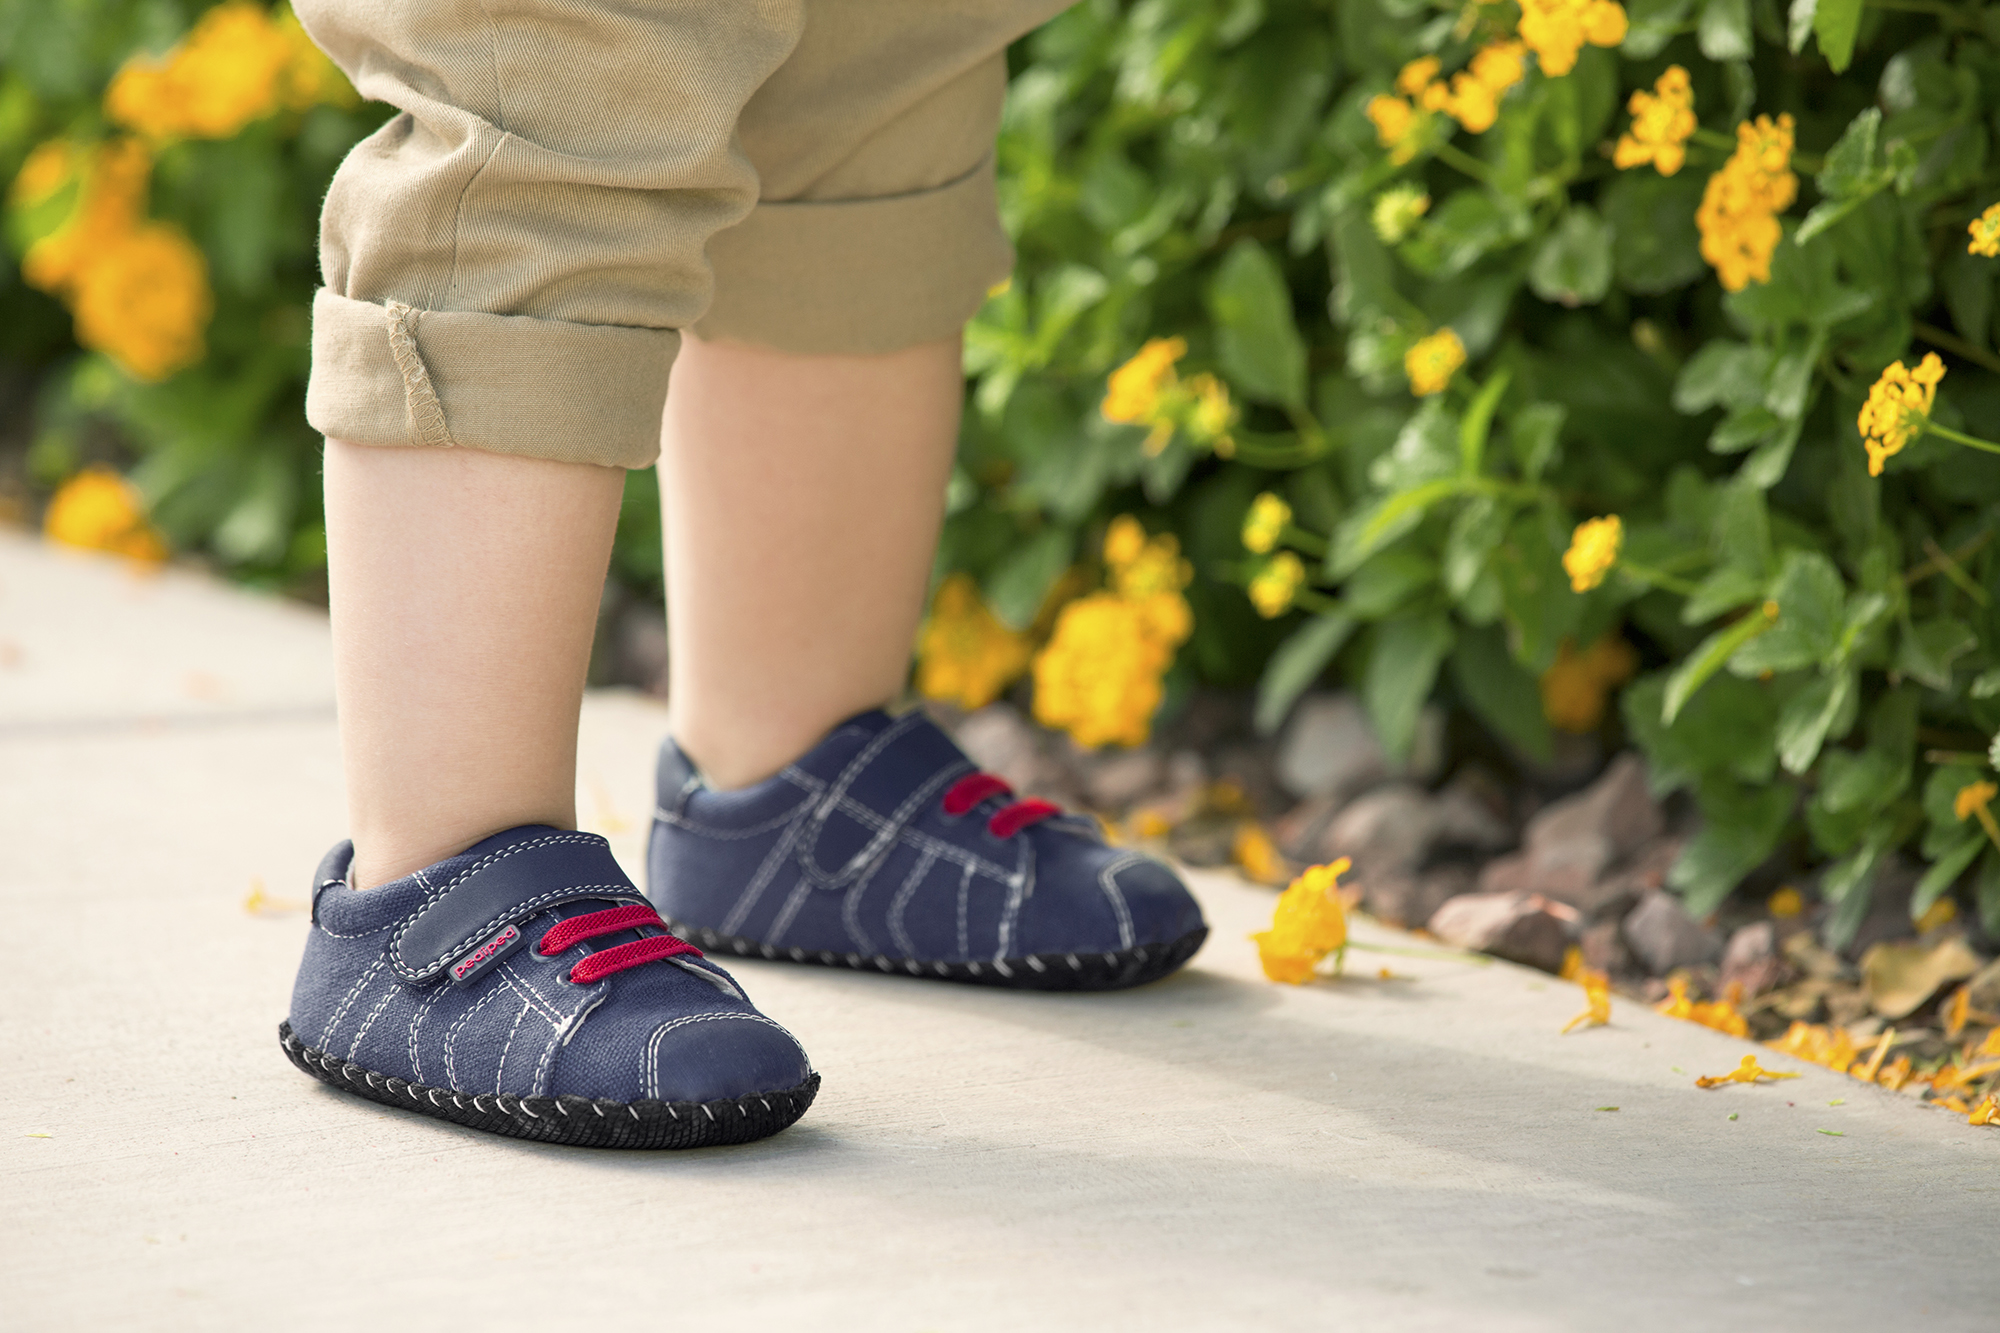 Summer Style Pediped Shoes for Babies and Toddlers giveaway